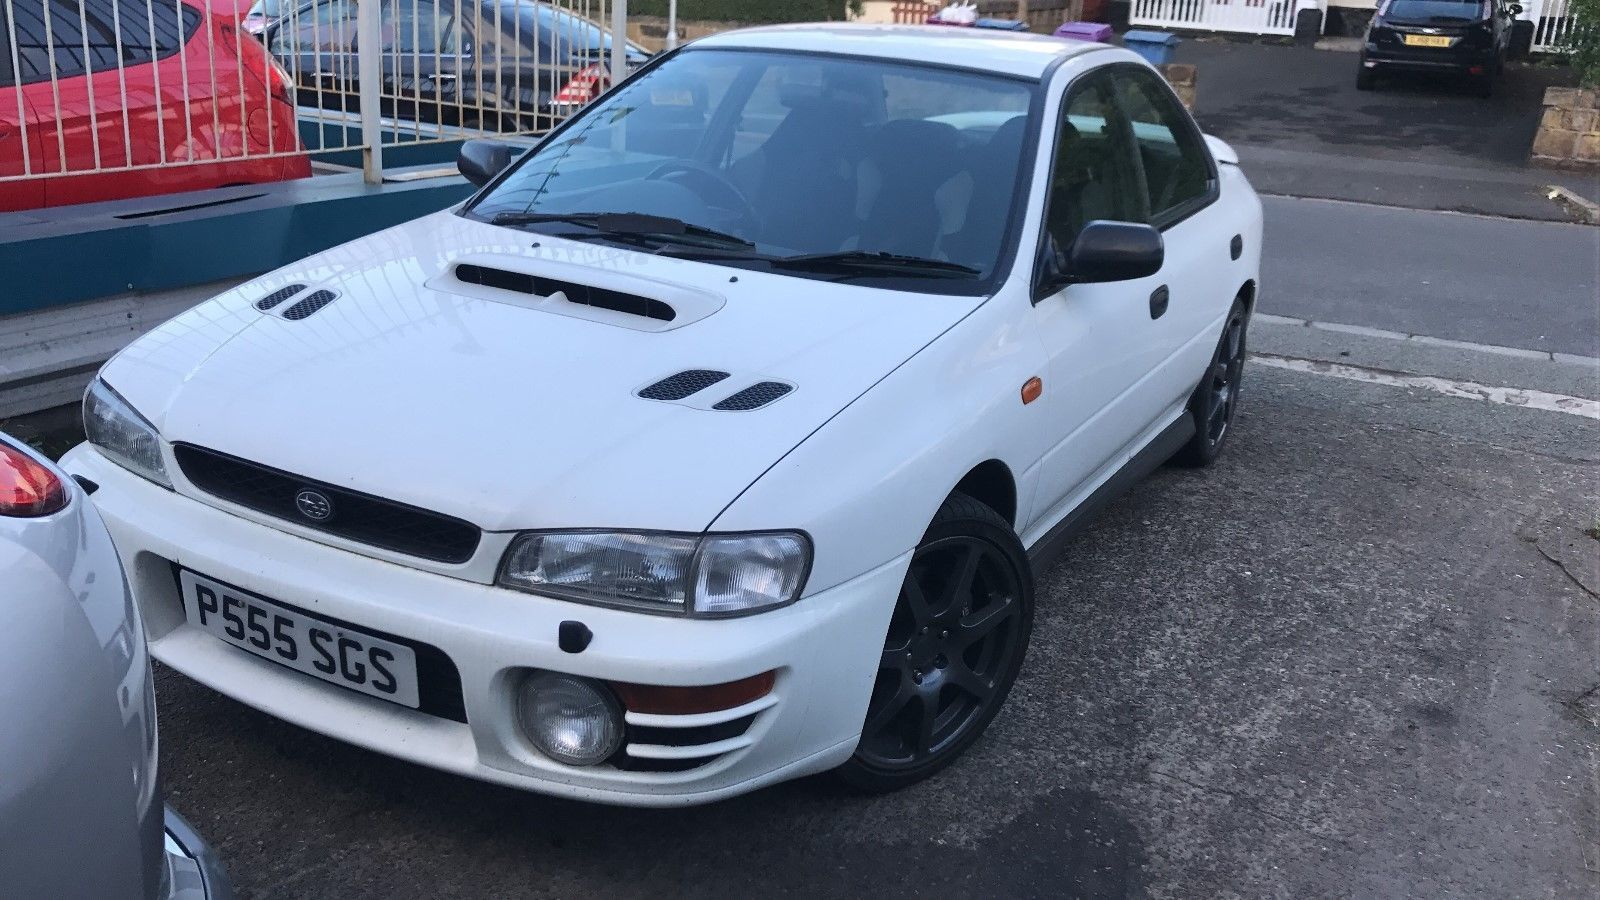 We found this subaru impreza turbo on eBay. | 80s & 90s Turbo Cars